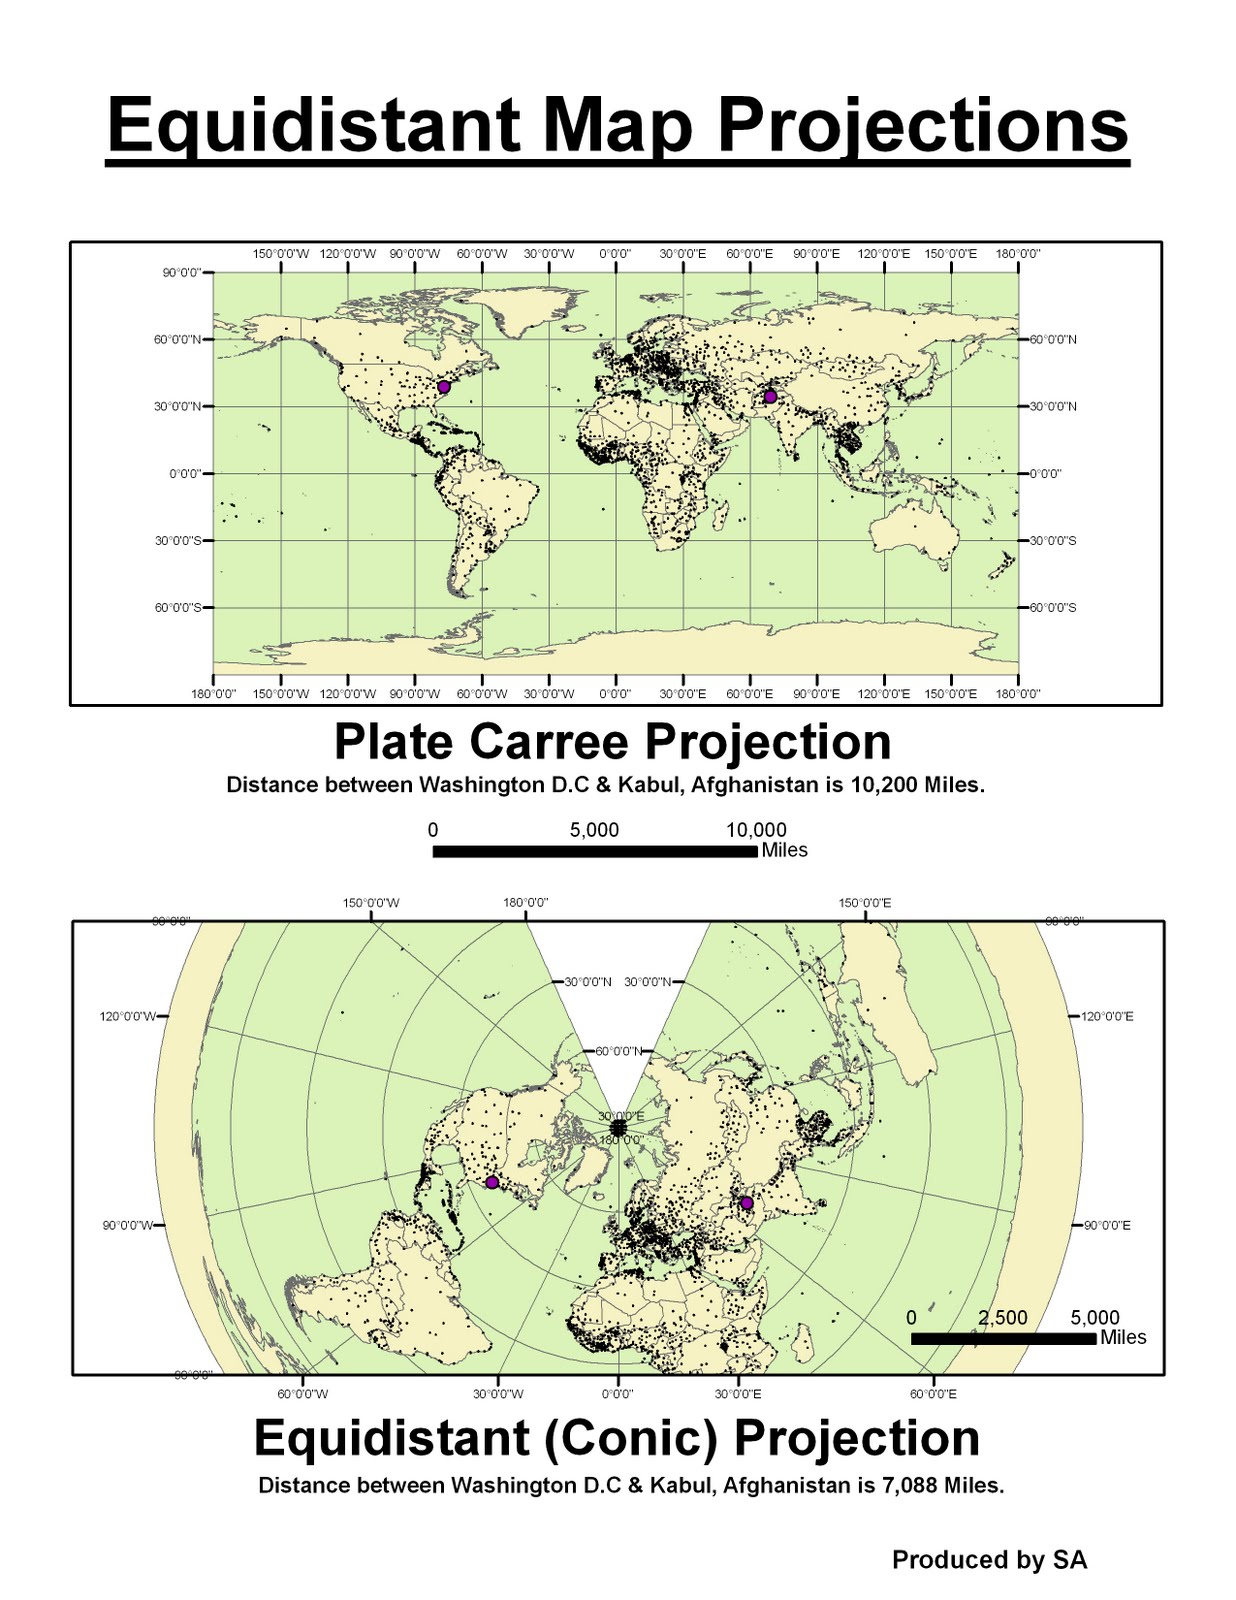 working with the preserved map projections of conformal equidistant and equal area has showed me the importance of knowing and setting the proper map